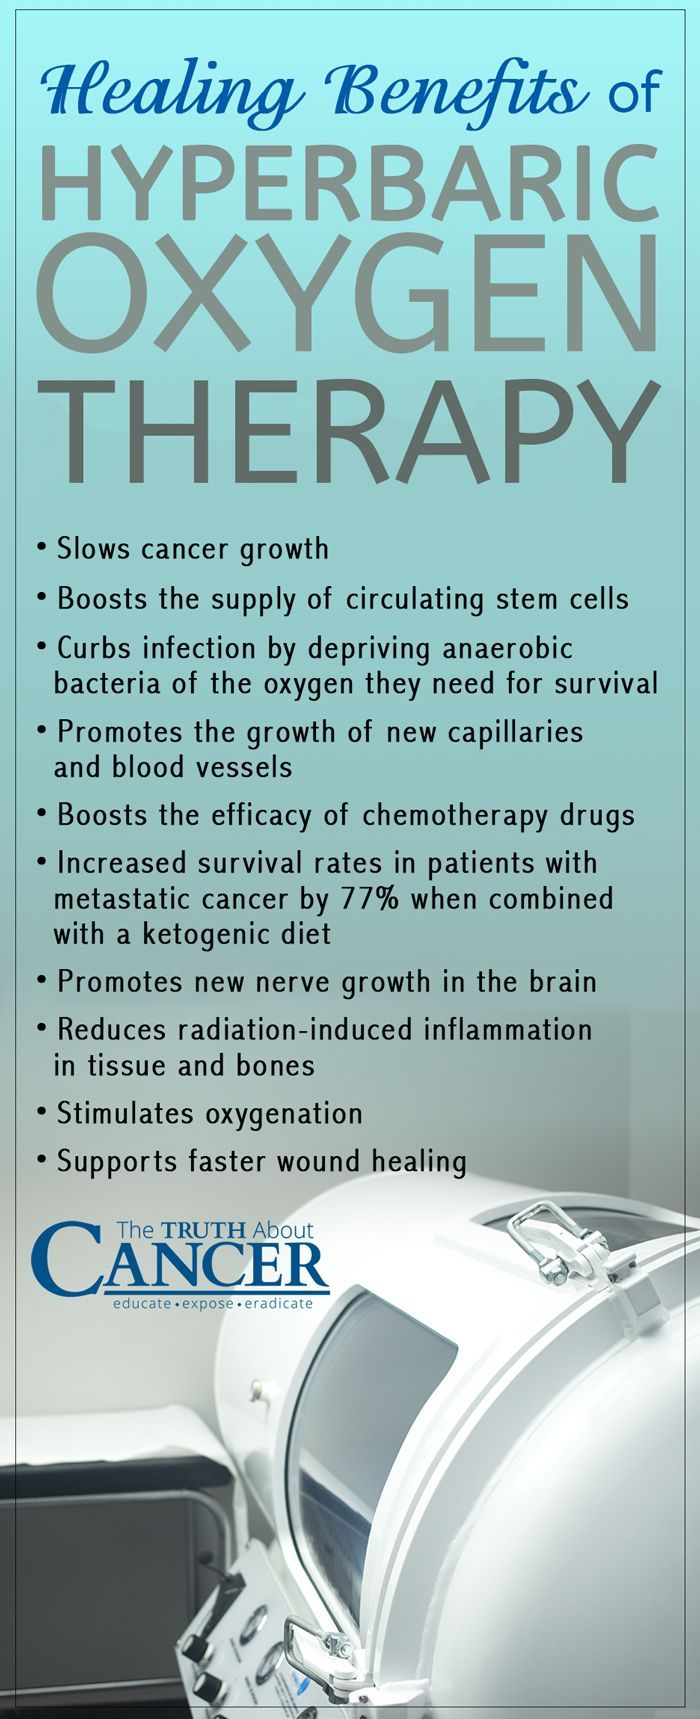 Did you know that cancer cells have an altered metabolism and are no longer dependent upon oxygen? In fact, high oxygenated environments are toxic to cancer cells. Read all about the healing benefits of Hyperbaric Oxygen Therapy here by clicking on the image or repin it for later! - The Truth About Cancer